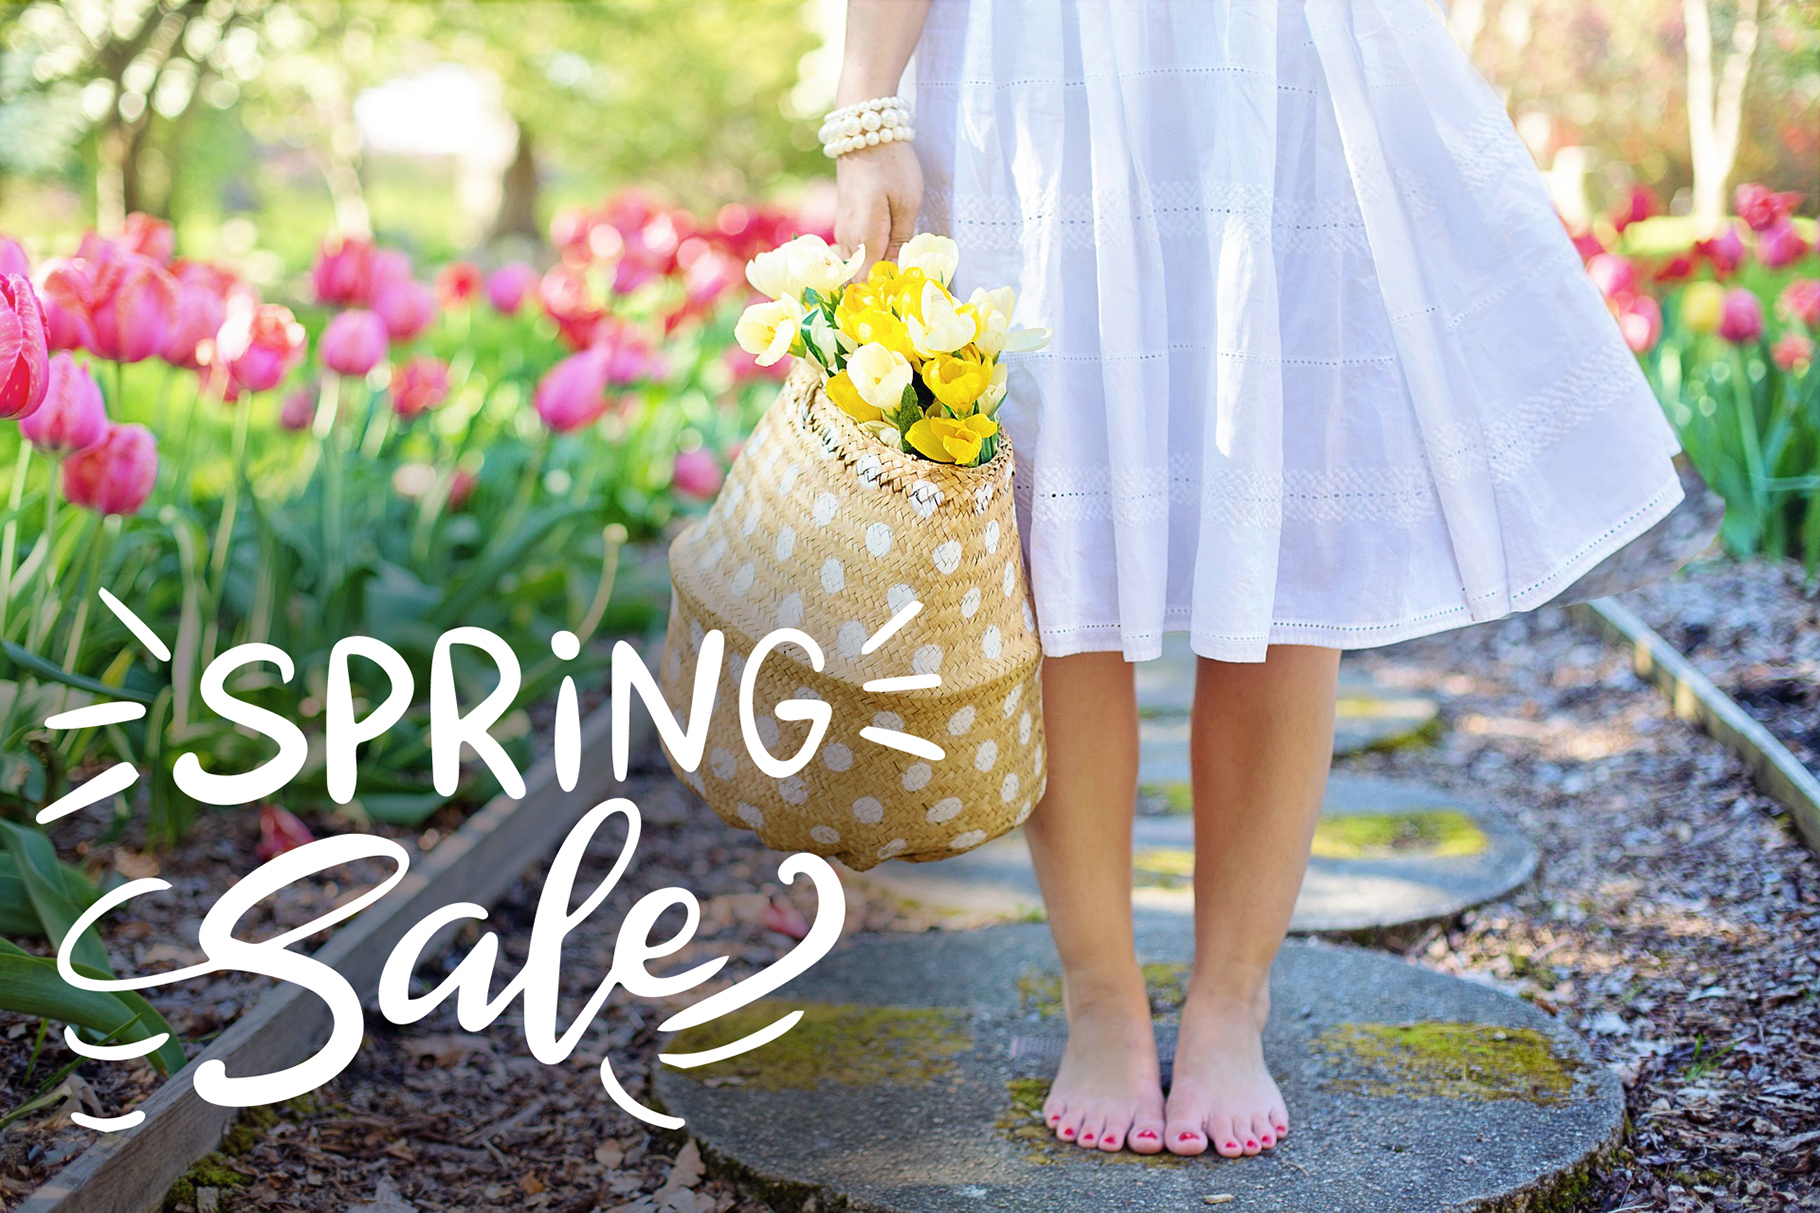 Spring Kit: Lettering and Clipart Graphic Illustrations By tregubova.jul - Image 6